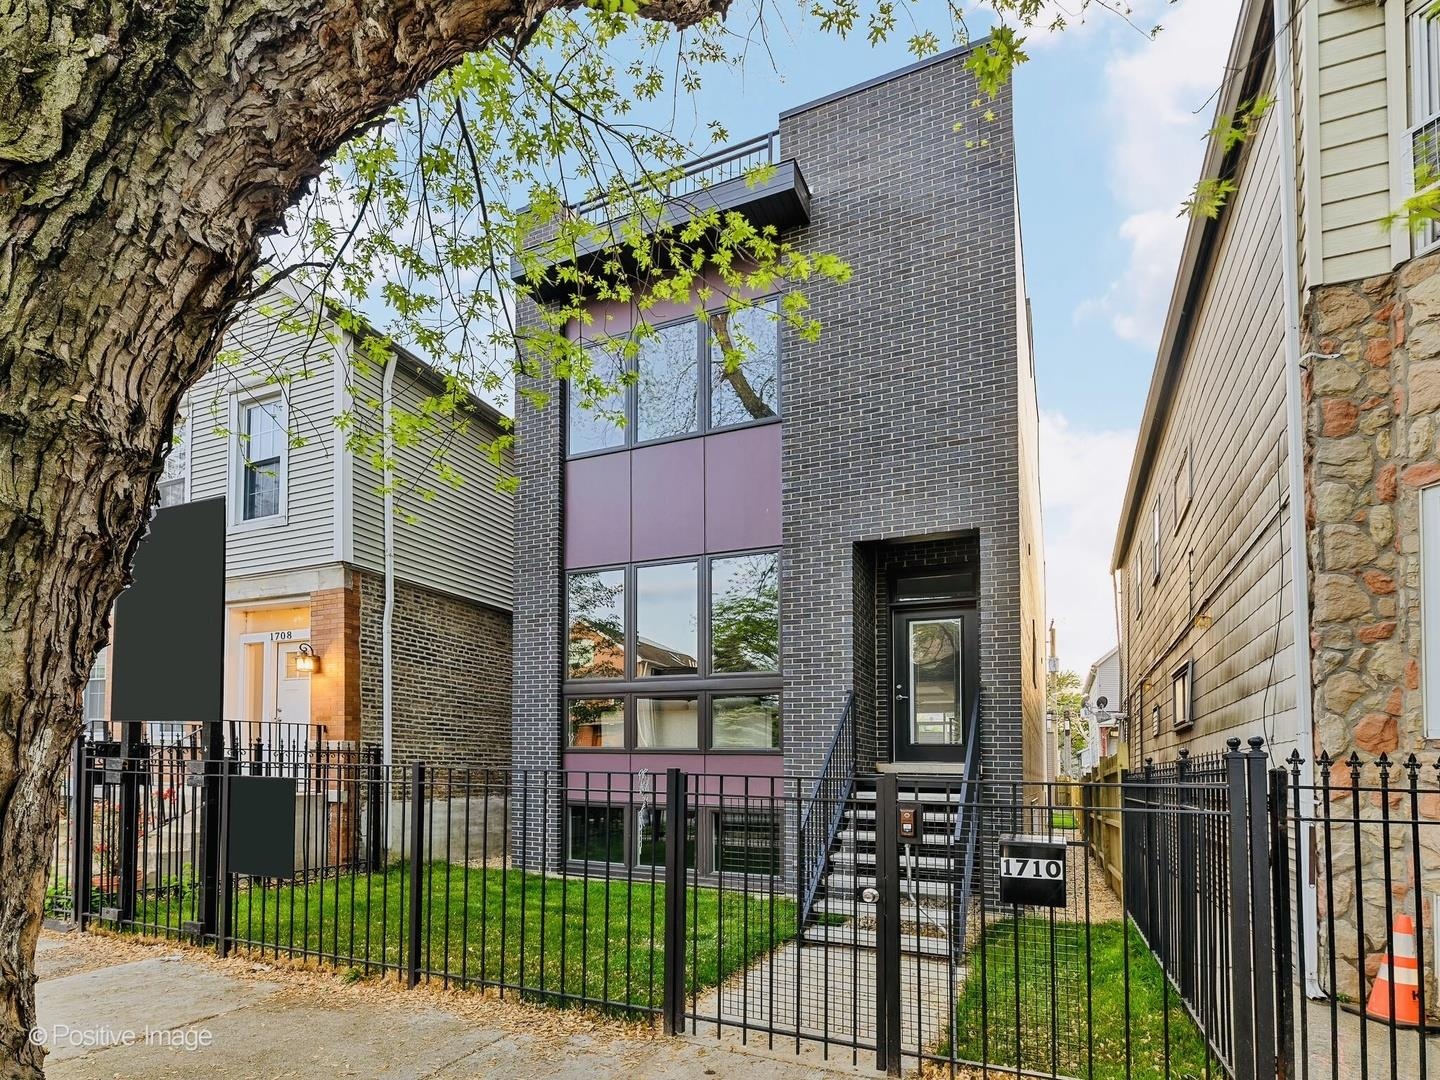 1710 N Rockwell Street, Chicago, IL 60647 - #: 11068286